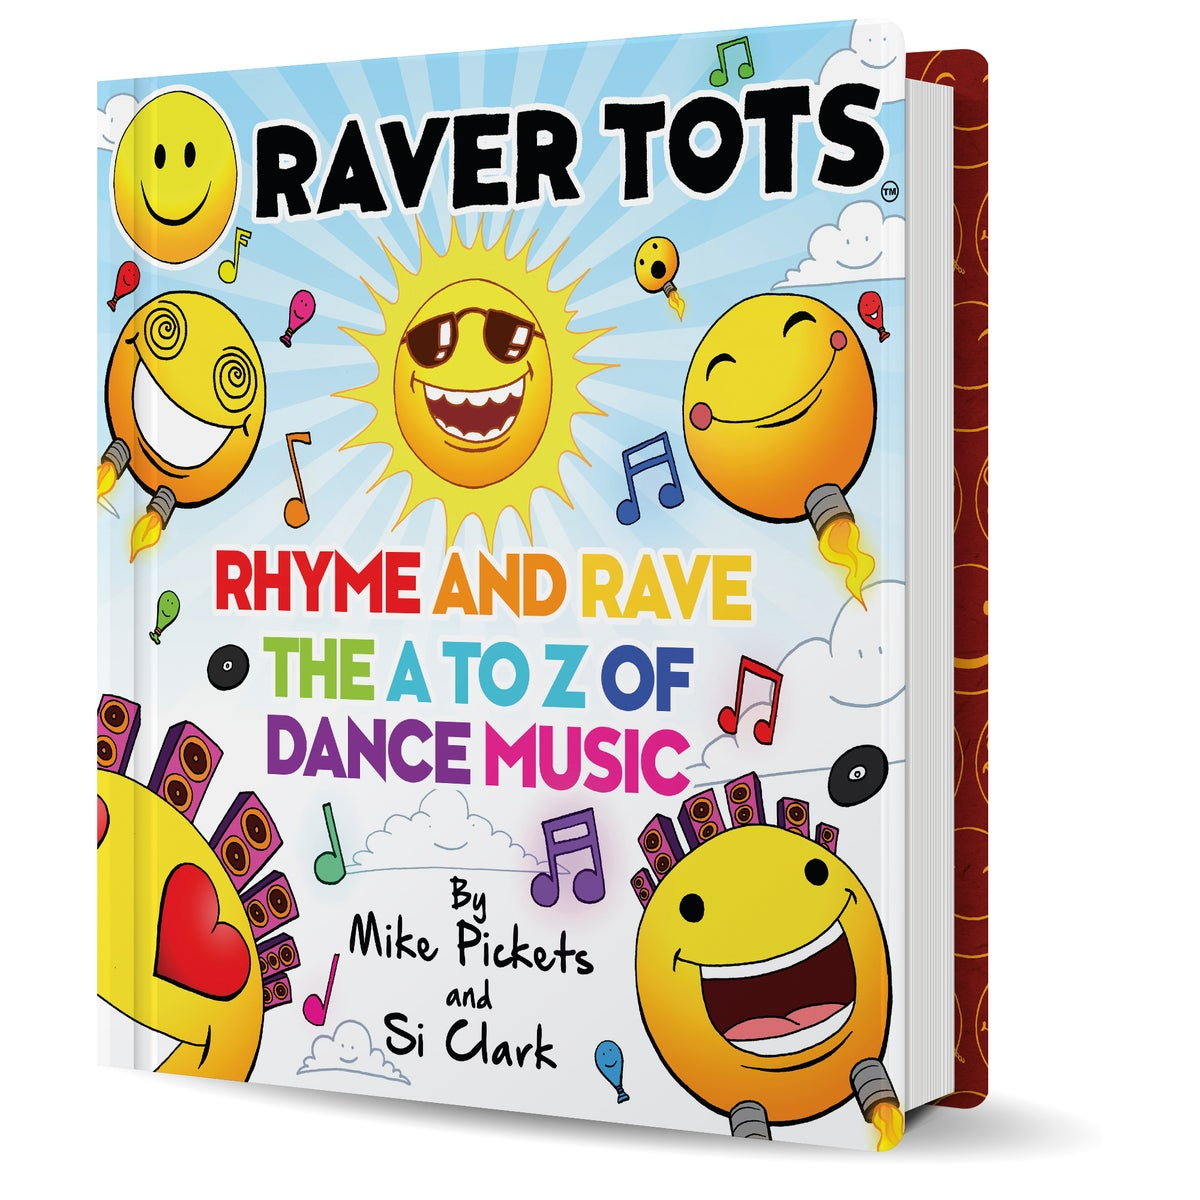 Raver Tots Official Book: Rhyme and Rave, The A to Z of Dance Music